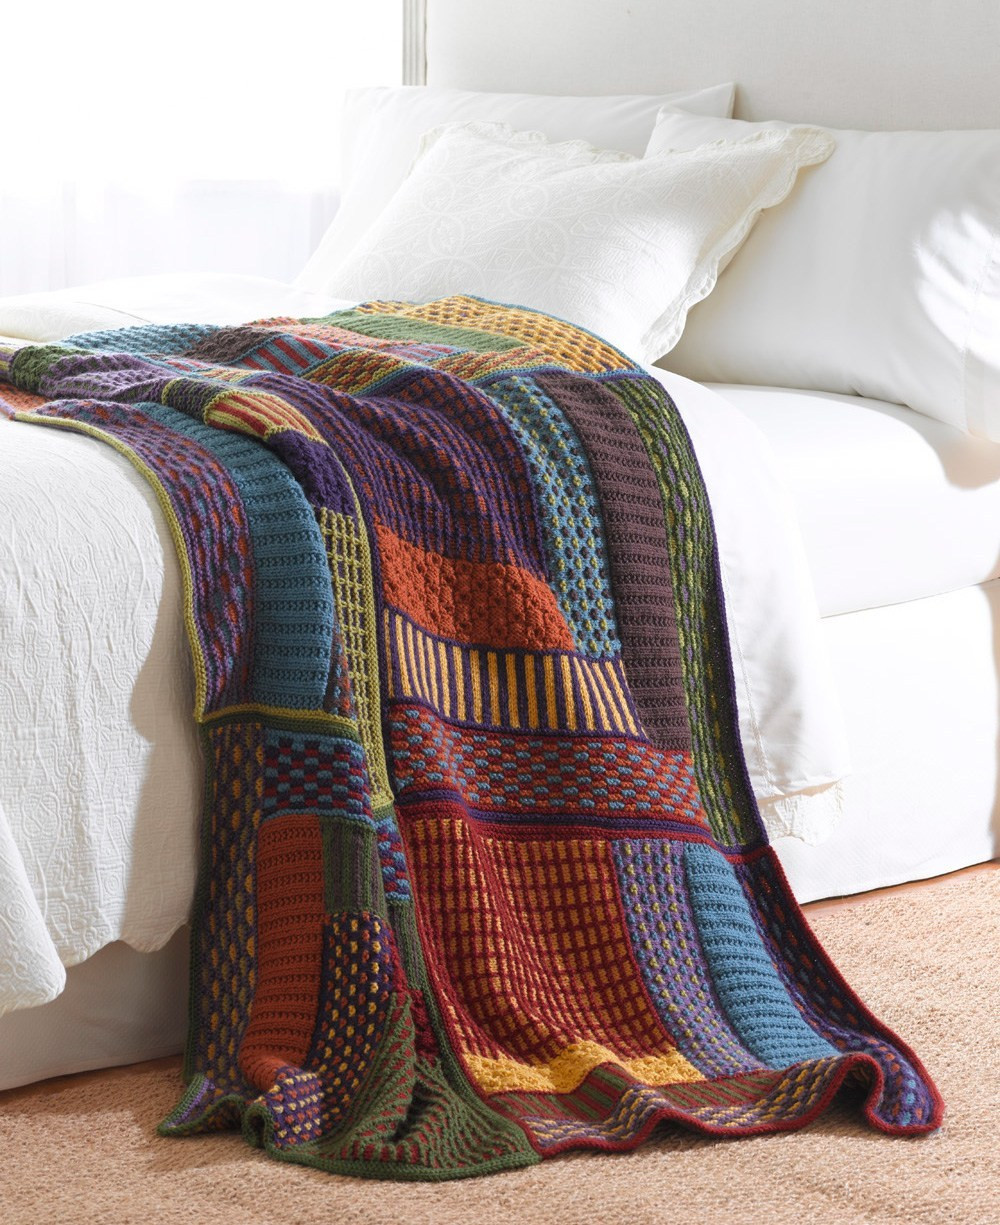 Knitted Throw Elegant Sampler Knitting Patterns for Afghans Accessories and Of Wonderful 48 Images Knitted Throw